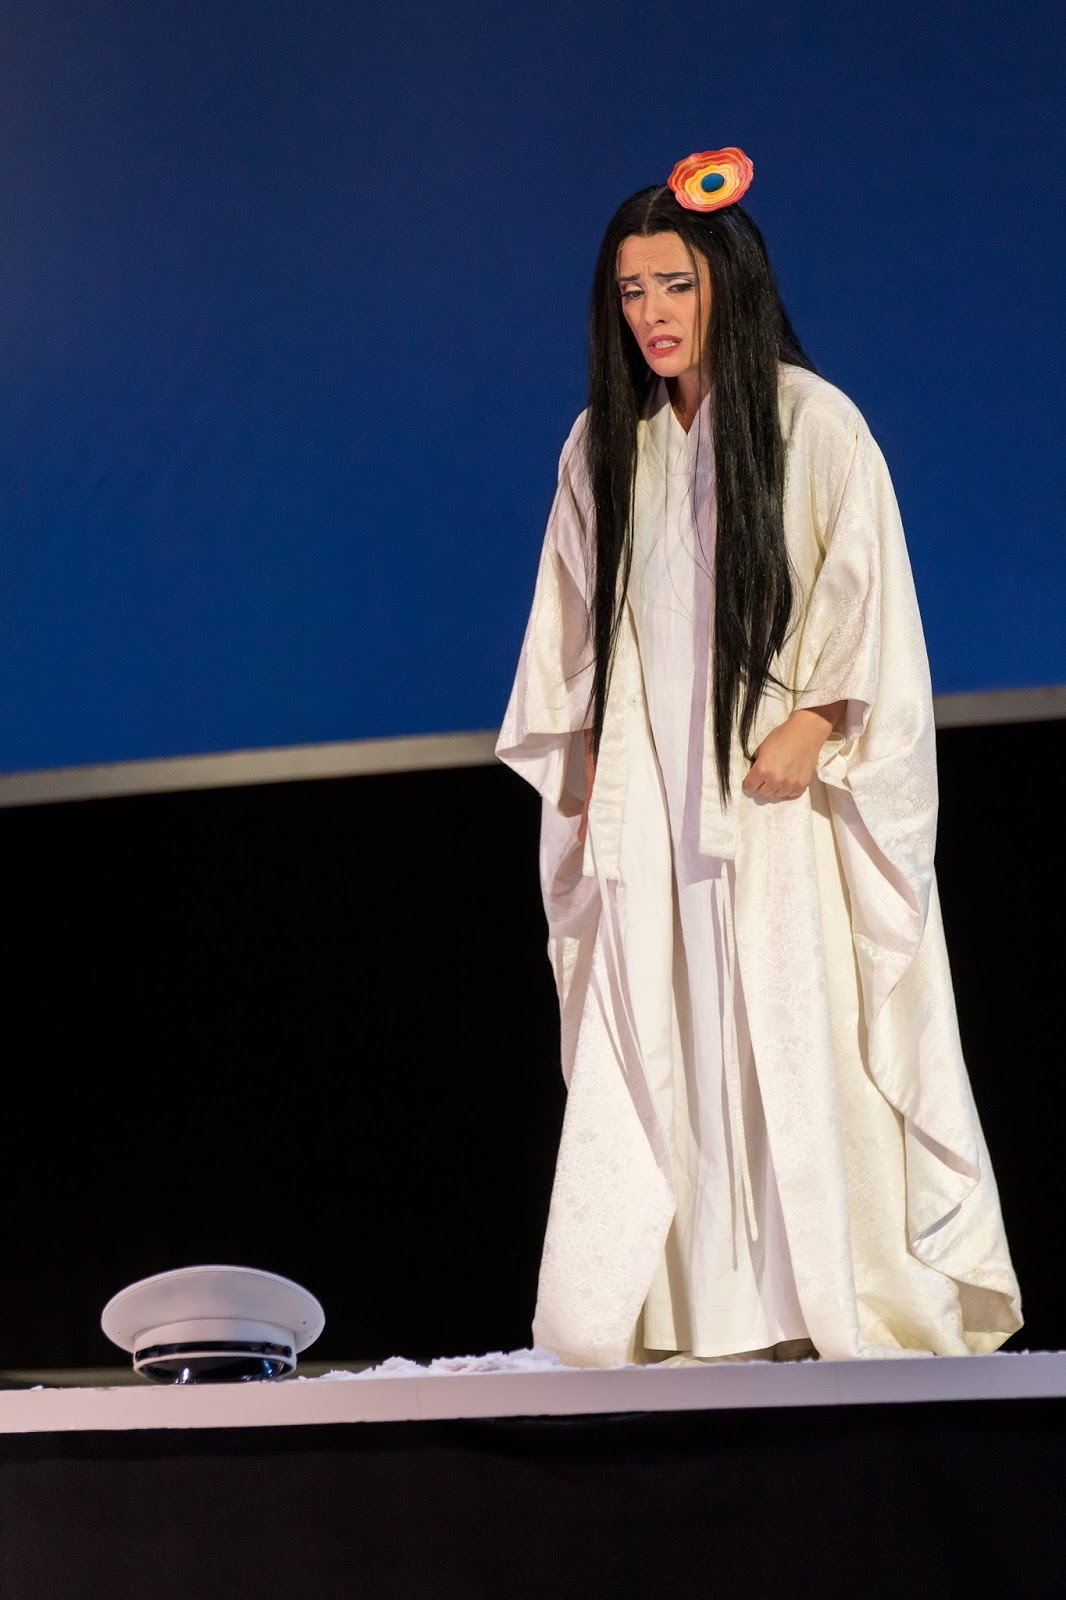 IN PERFORMANCE: Soprano ERMONELA JAHO as Cio-Cio-San in Washington National Opera's production of Giacomo Puccini's MADAMA BUTTERFLY, May 2017 [Photo by Scott Suchman, © by Washington National Opera]